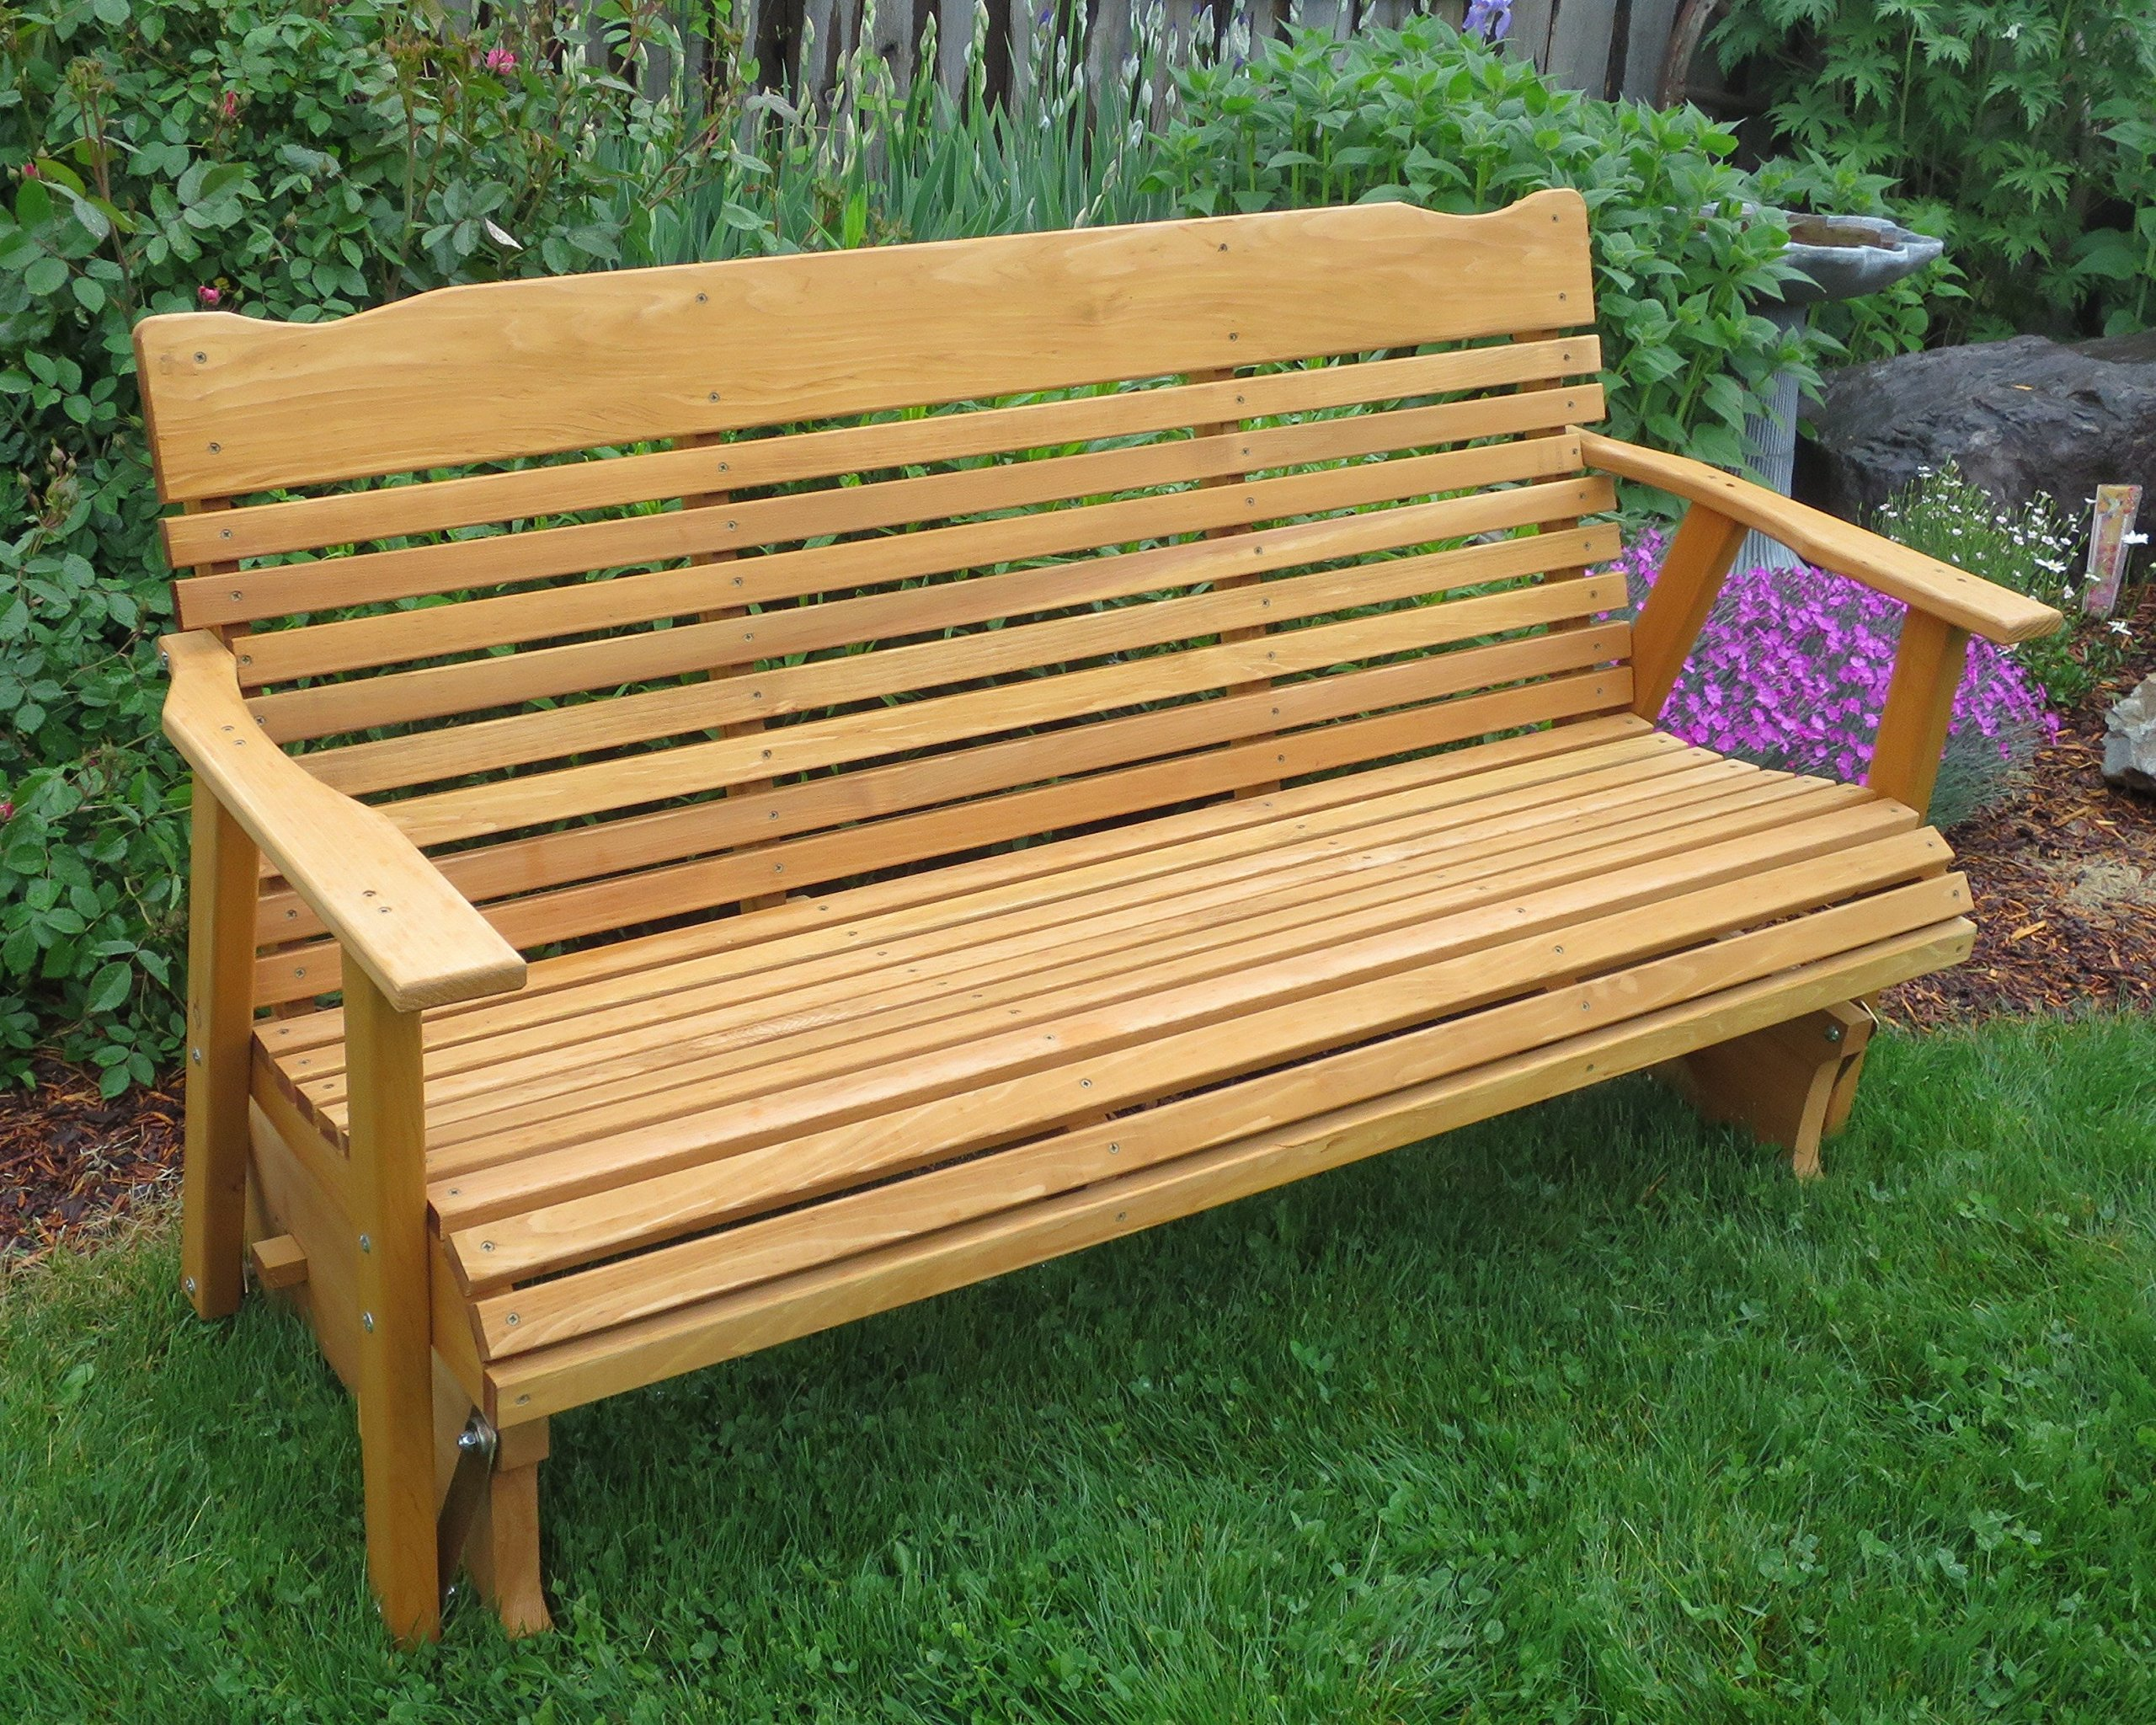 5' Cedar Porch Glider W/stained Finish, Amish Crafted by Kilmer Creek